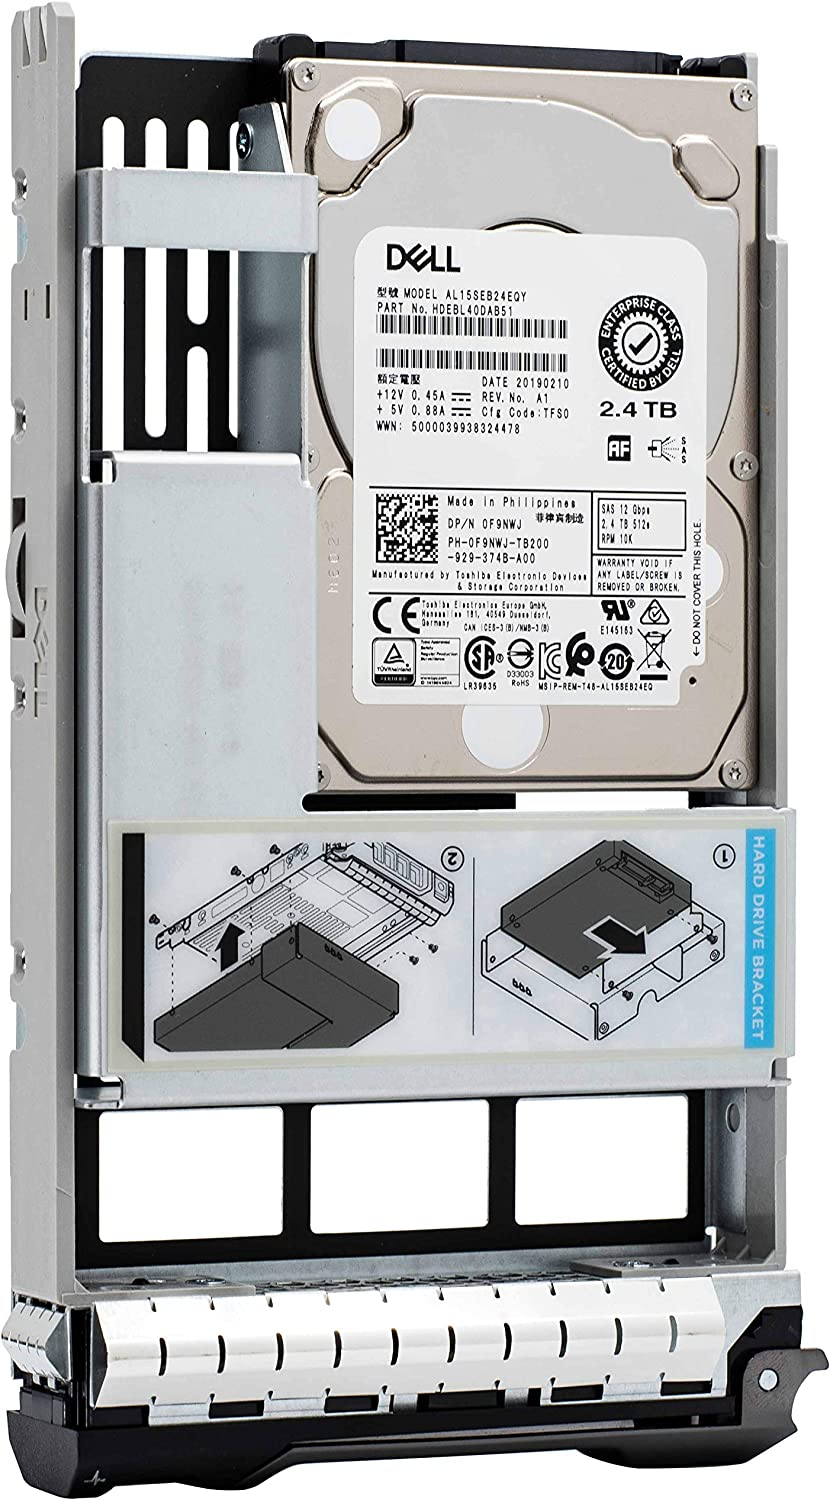 Dell 400-AUVR 2.4TB HDD 10K RPM SAS 12Gbps Hybrid 2.5in to 3.5in Tray Hot Plug Hard Drive